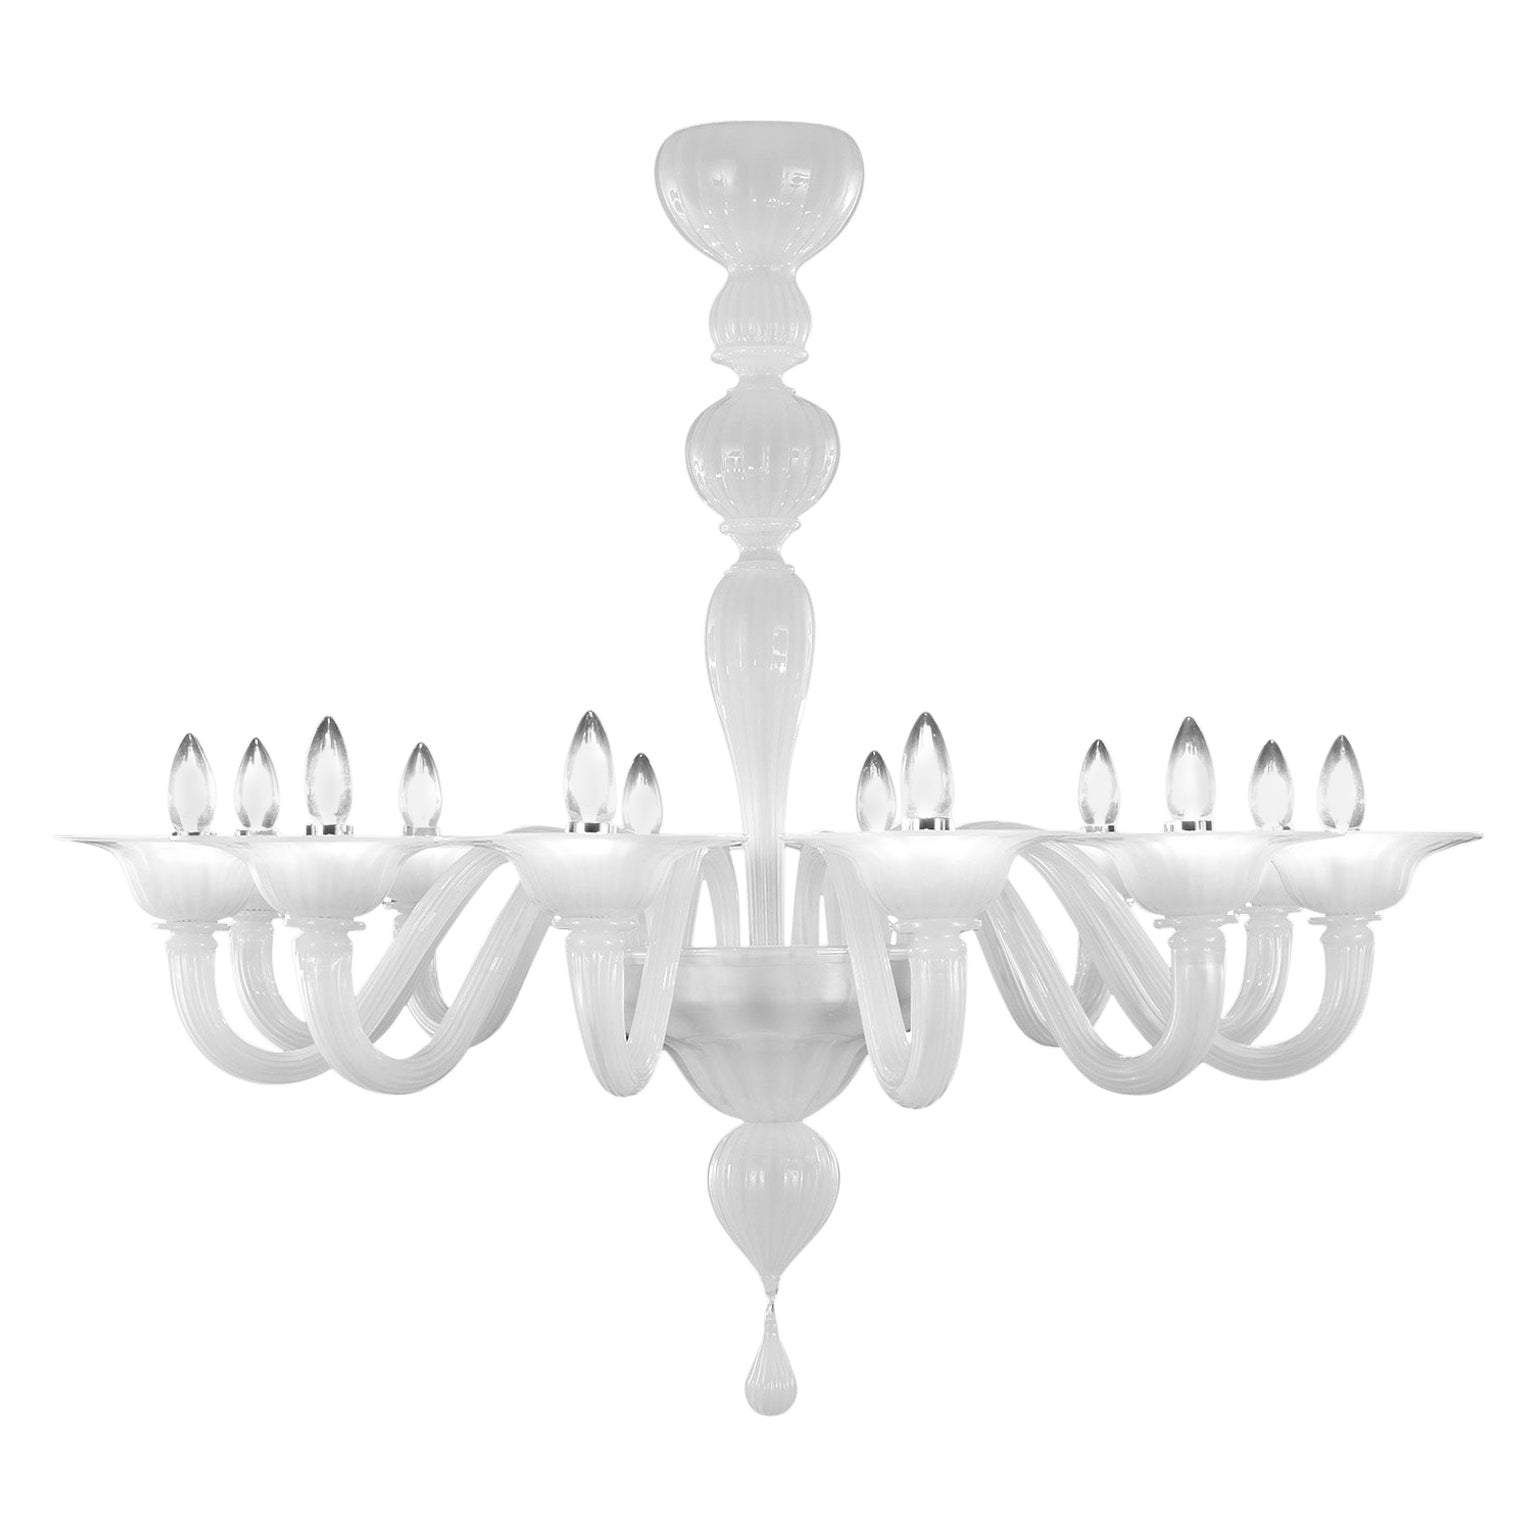 21st Century Chandelier, 12 Arms Silk Murano Glass by Multiforme